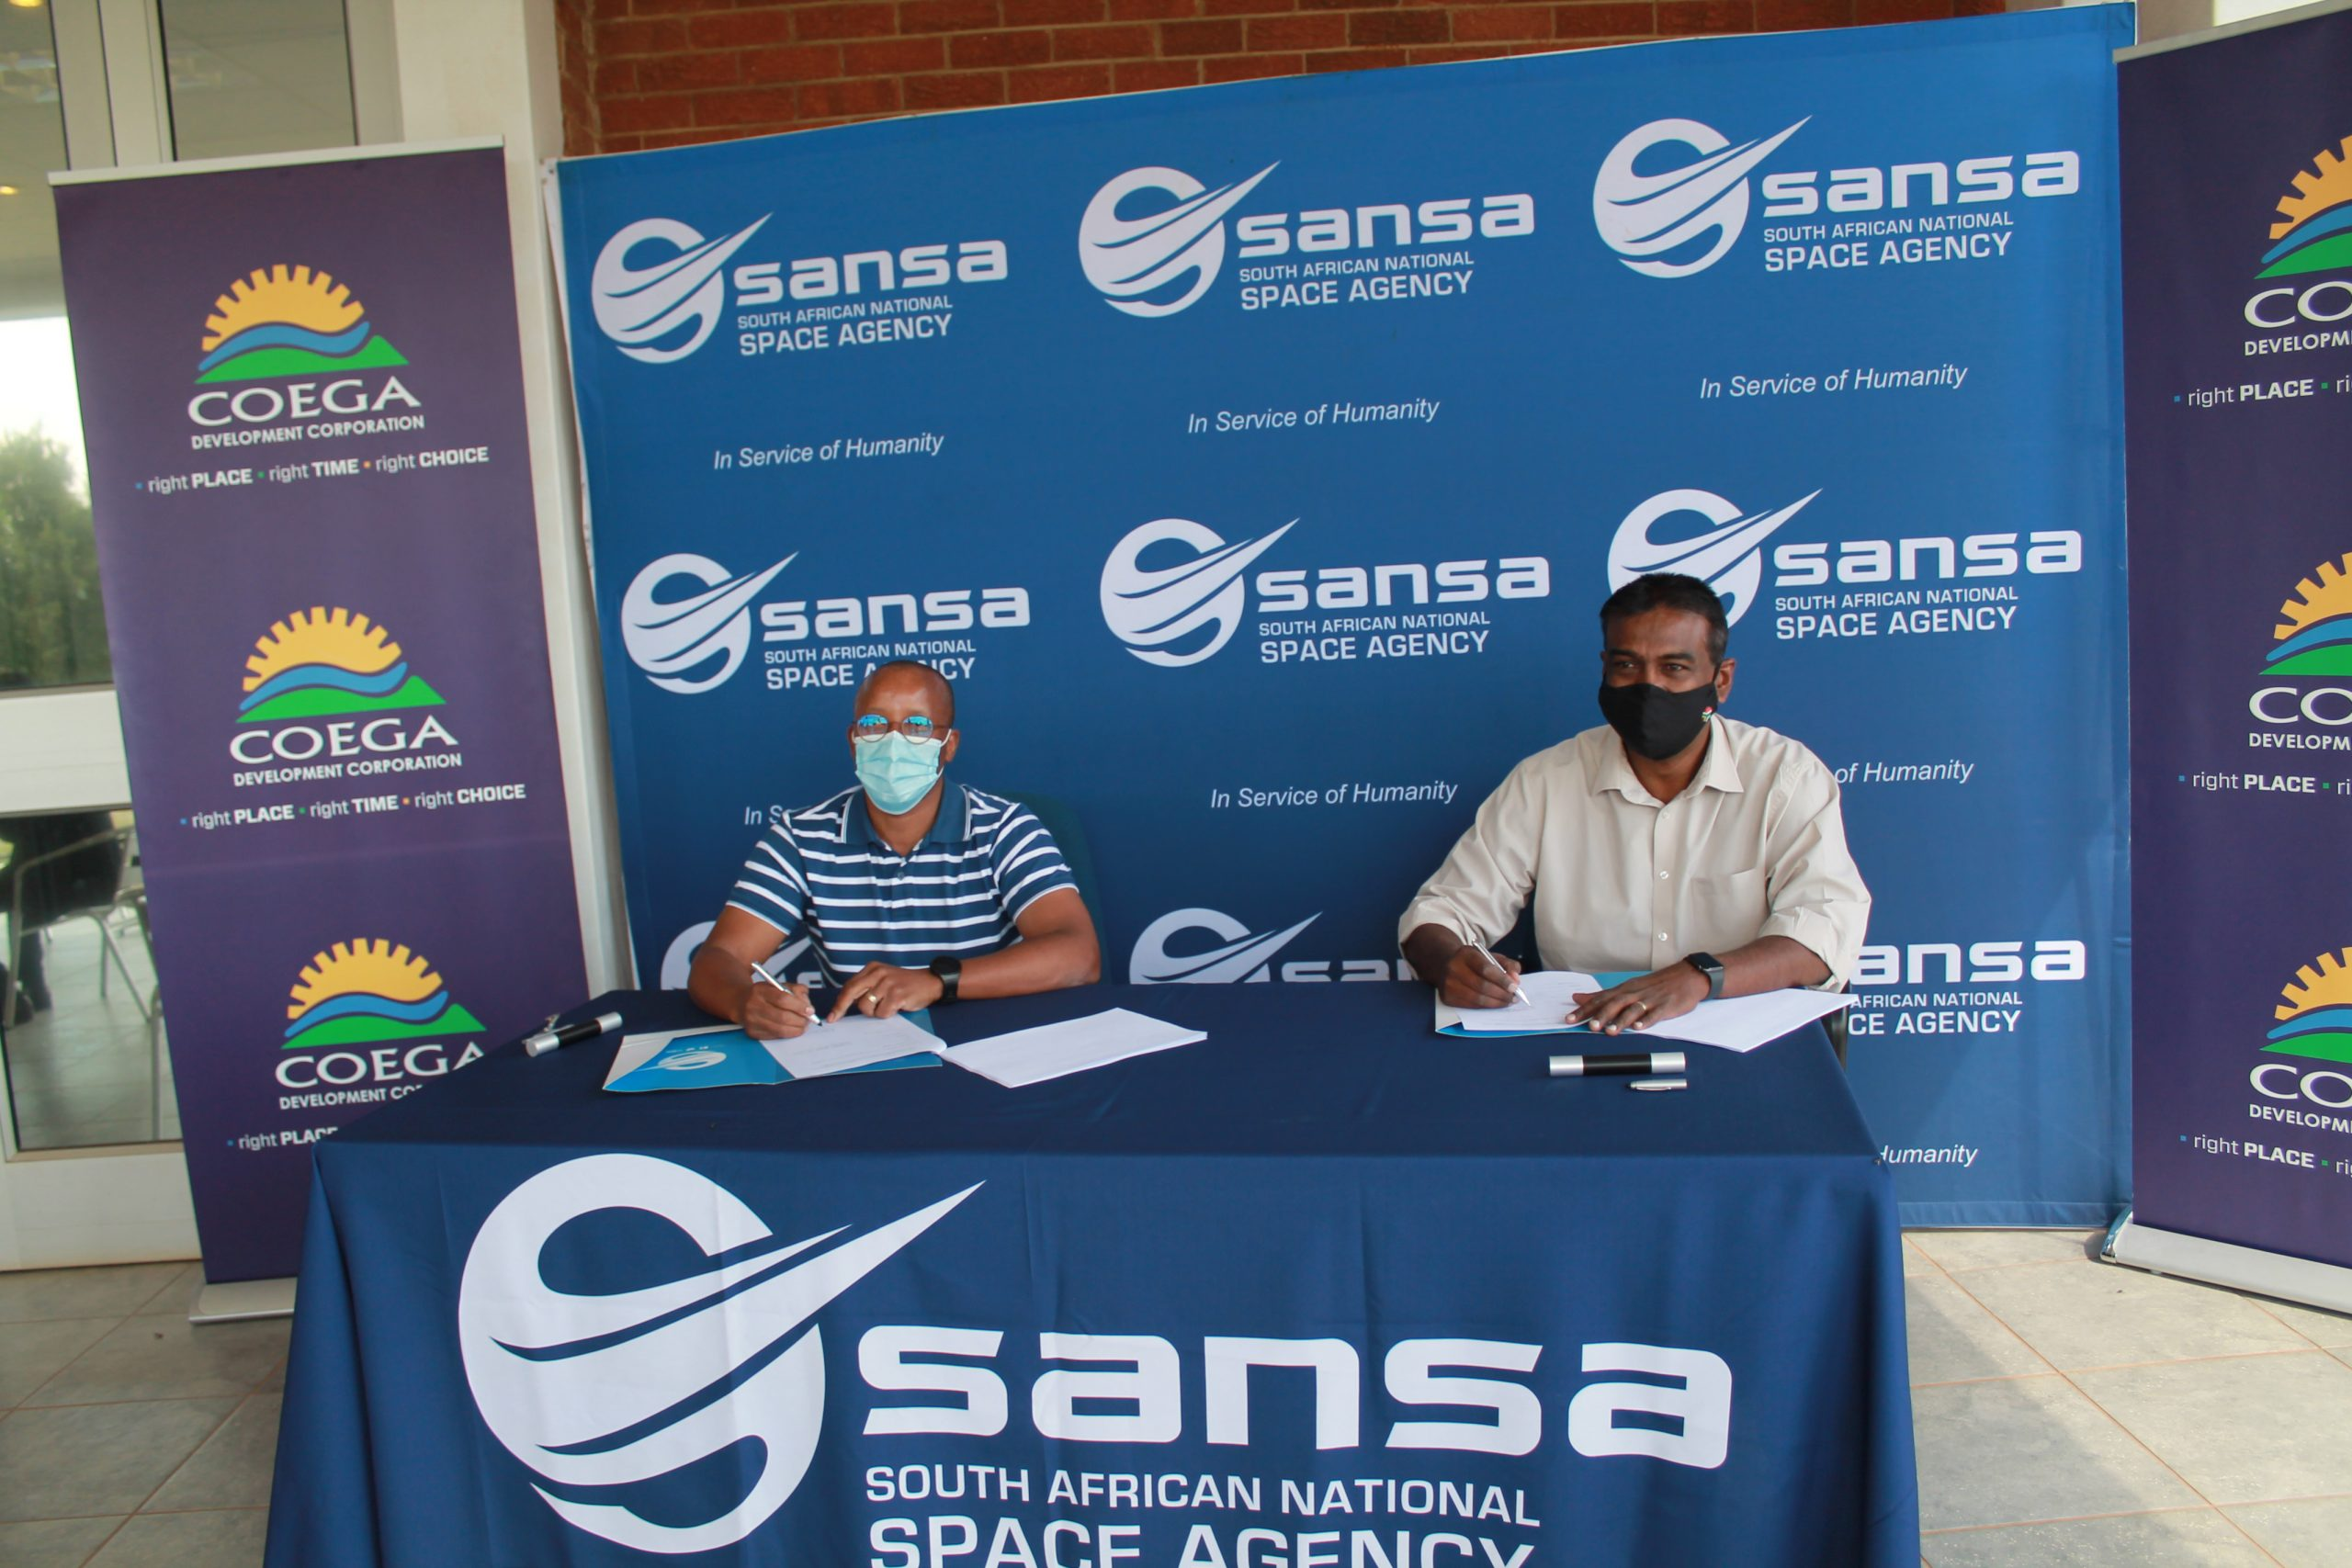 CEO's from CDC and SANSA sign MoU